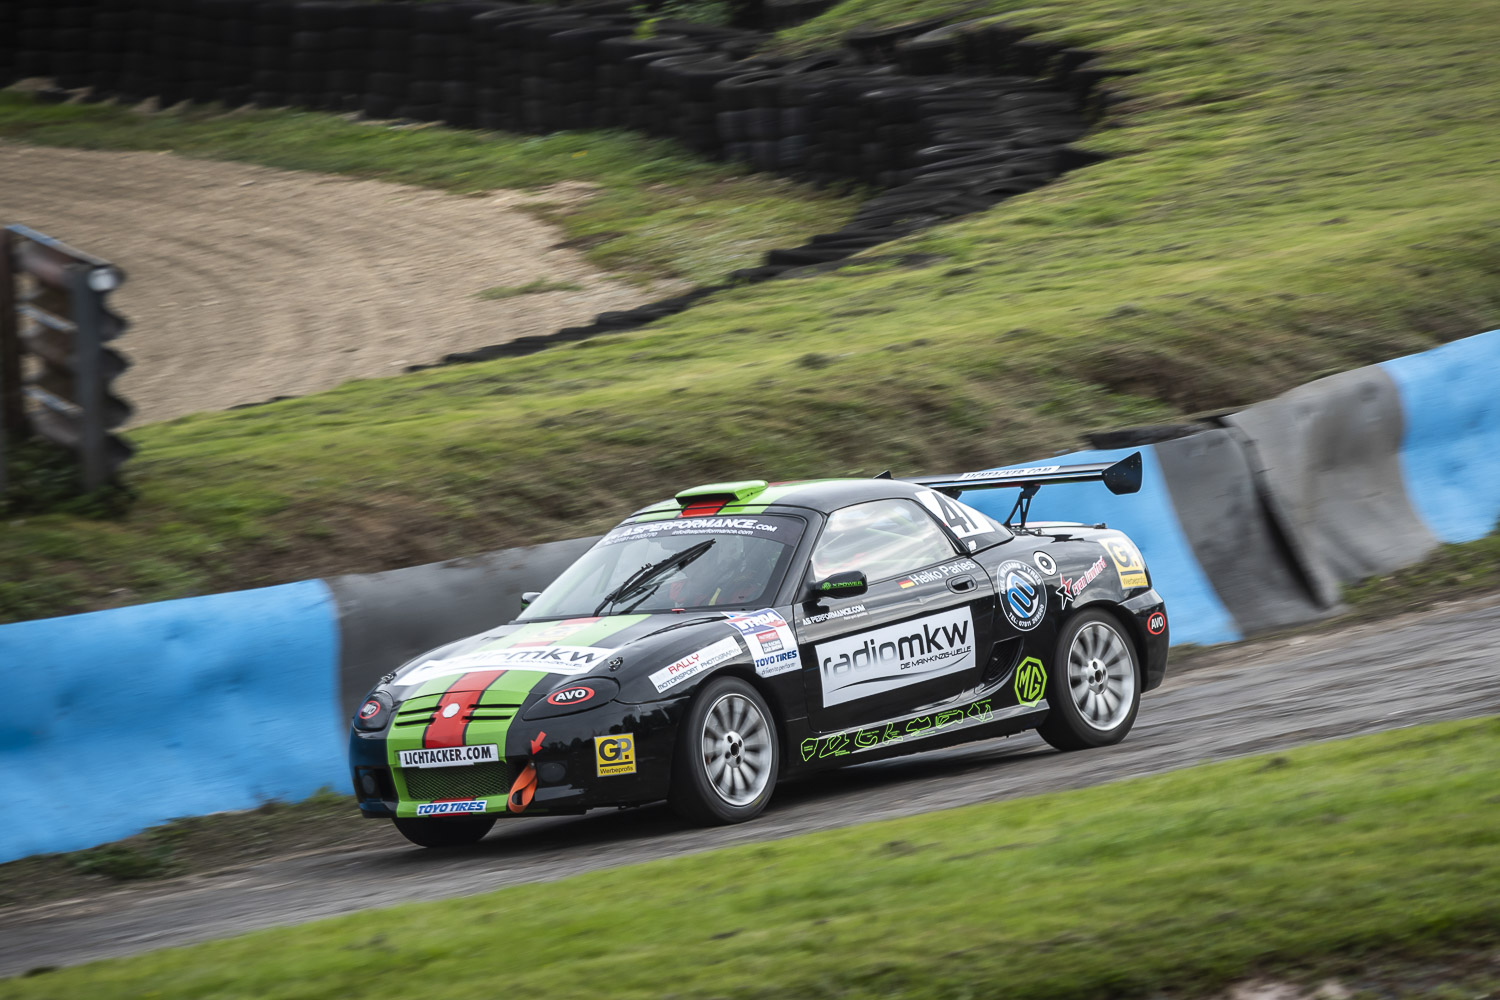 Heiko Paries International Rallycross with the unique MG TF160 RX at Lydden Hill Race Circuit